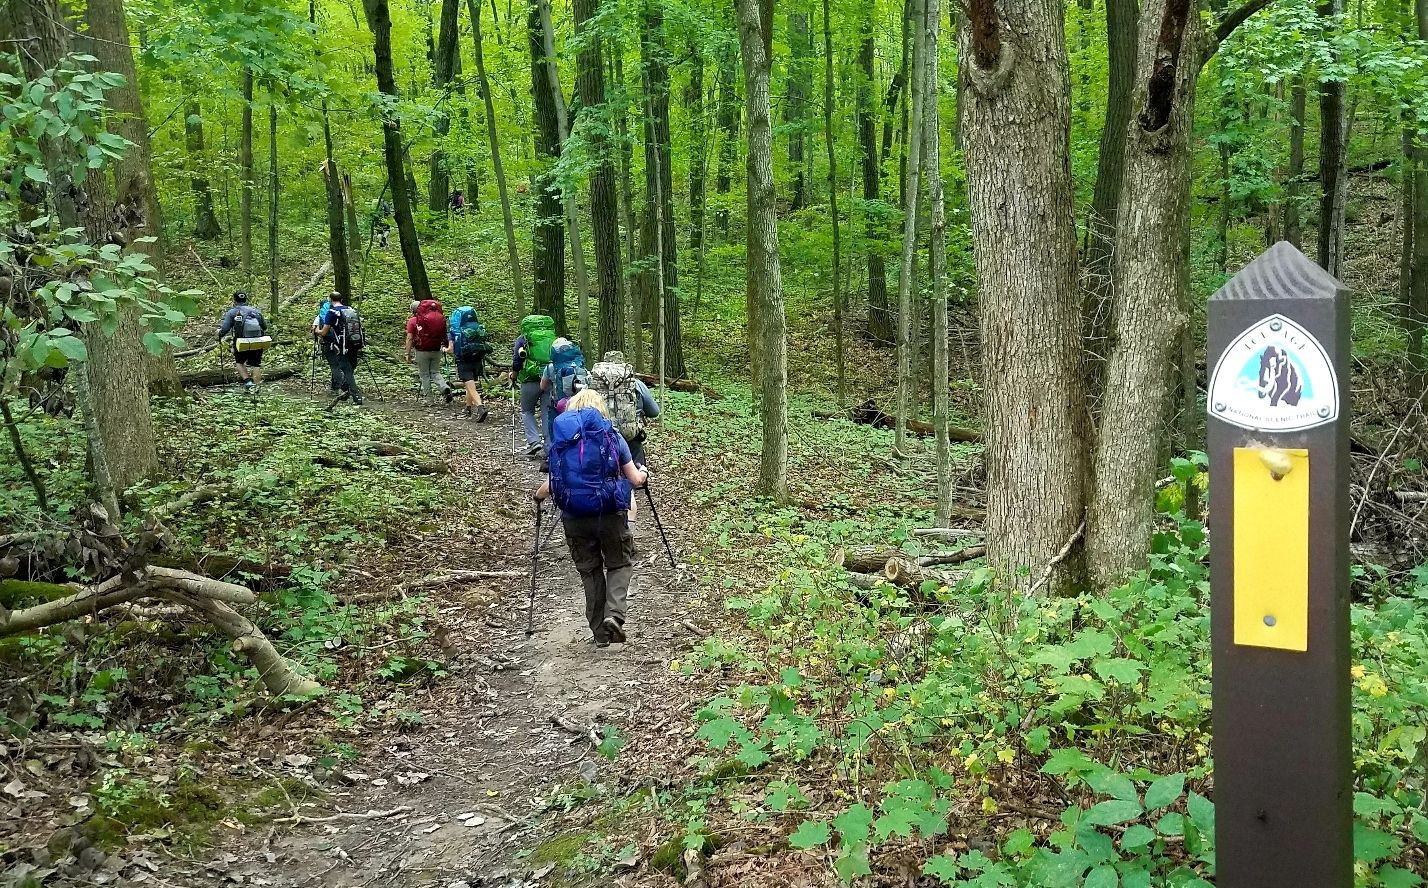 NOW Outdoors Wilderness Adventure Group